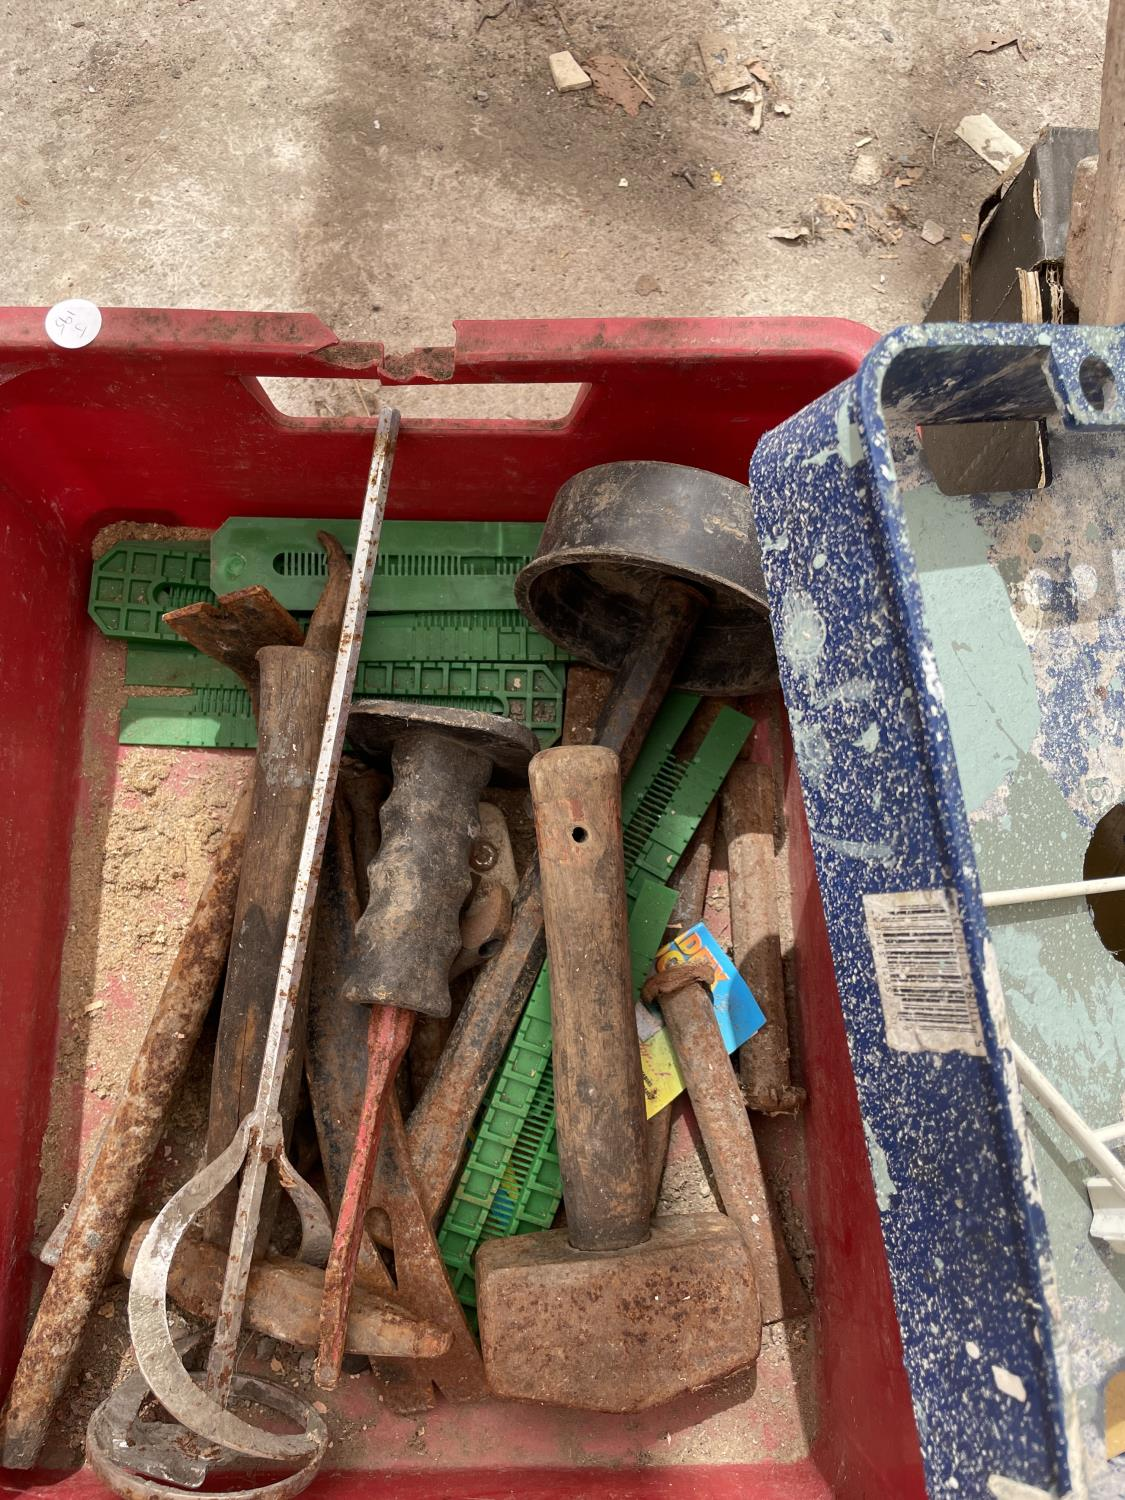 AN ASSORTMENT OF TOOLS TO INCLUDE TROWELS, SHOVELS AND CHISELS ETC - Image 6 of 6